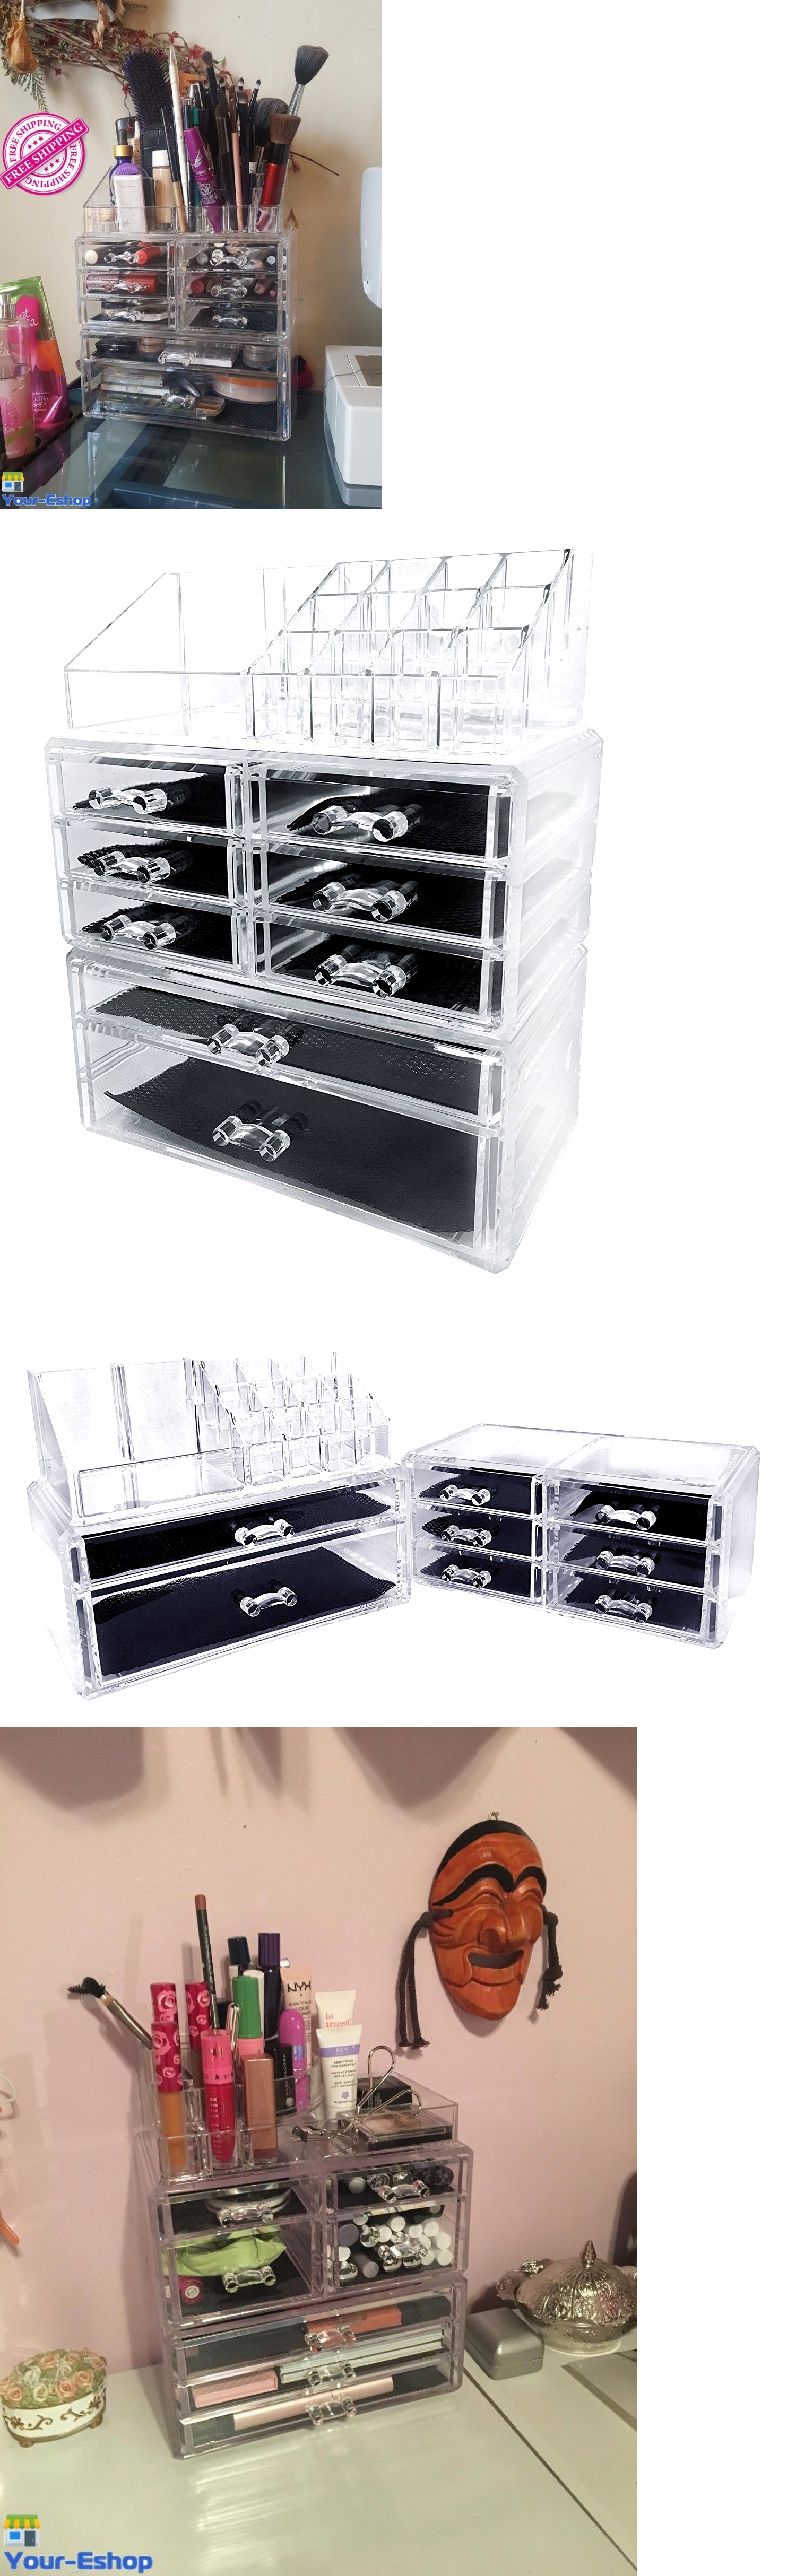 Makeup Bags and Cases: Clear Acrylic Makeup Large Organizer 8 Drawers Box For Make Up Cosmetic Storage BUY IT NOW ONLY: $34.69